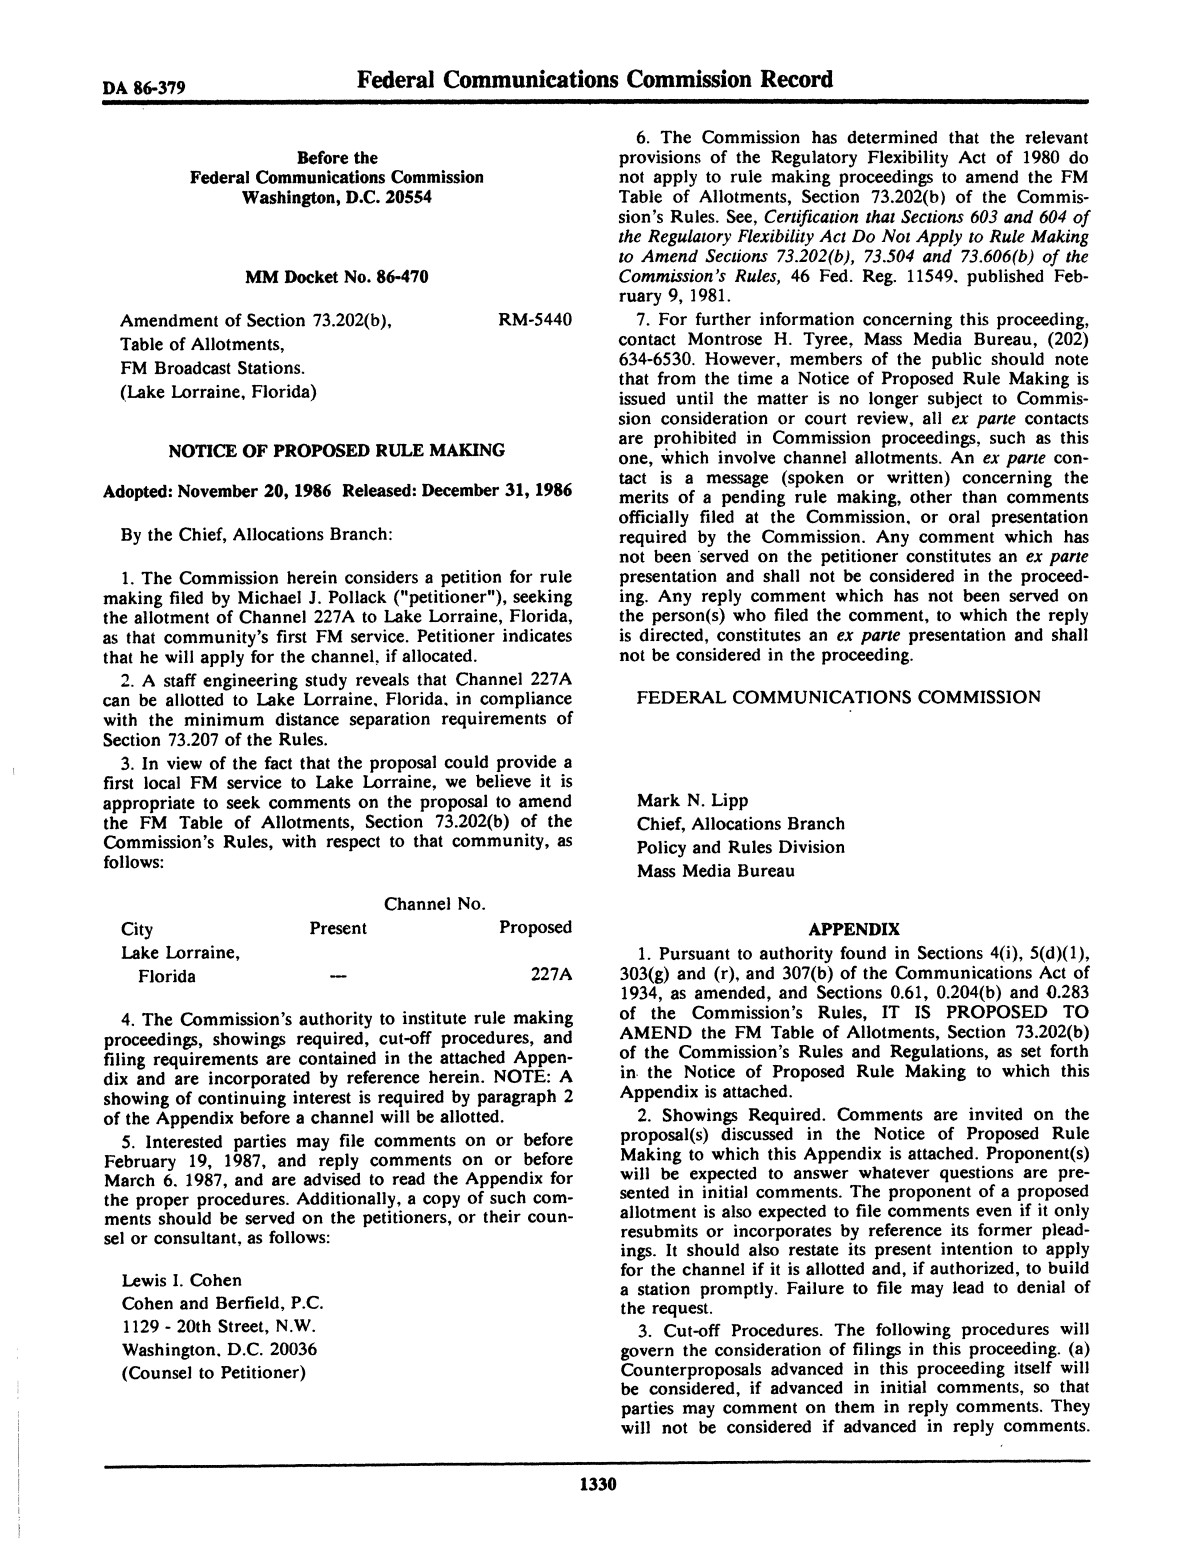 FCC Record, Volume 1, No. 7, Pages 1267 to 1368, December 22, 1986 - January 2, 1987                                                                                                      1330